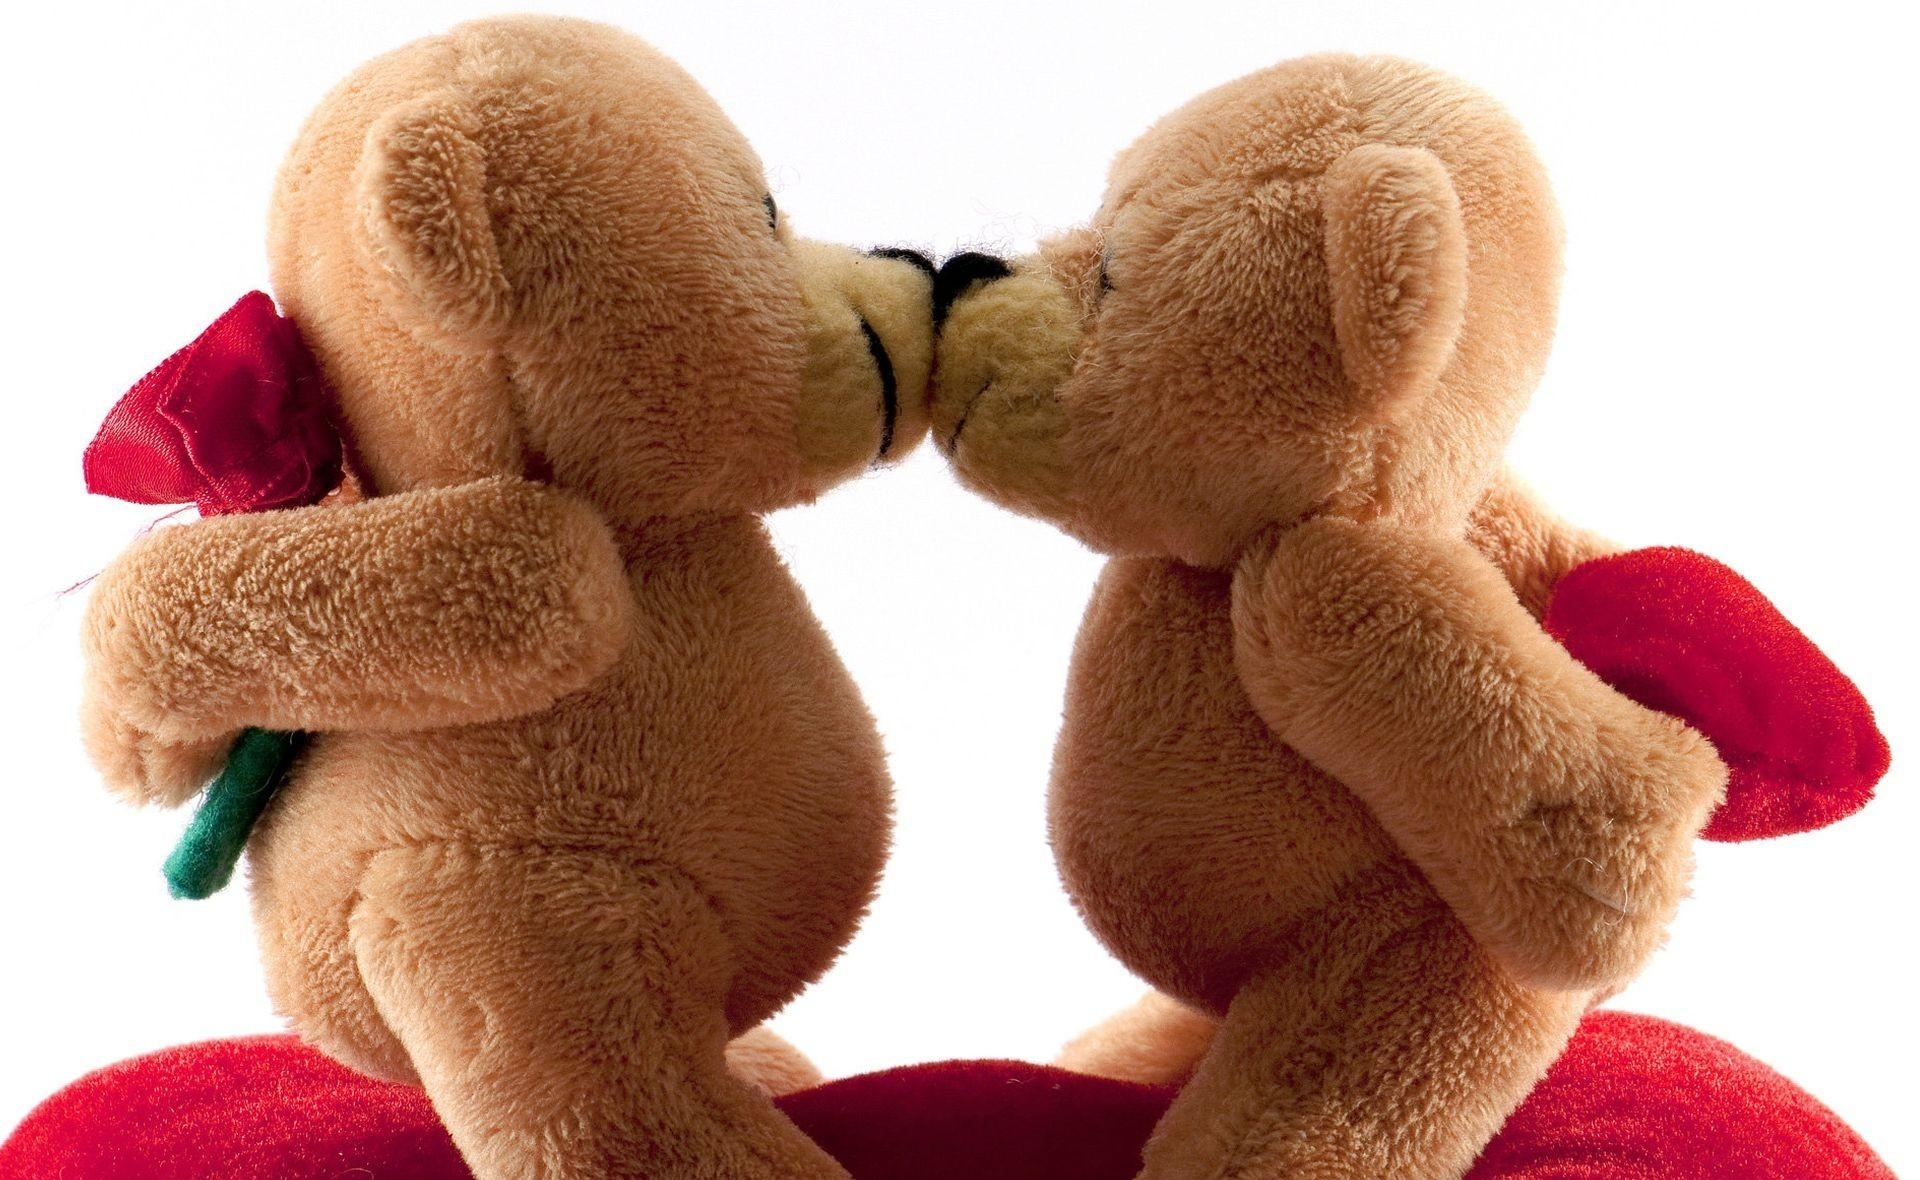 valentines day bears kiss romance wallpapers